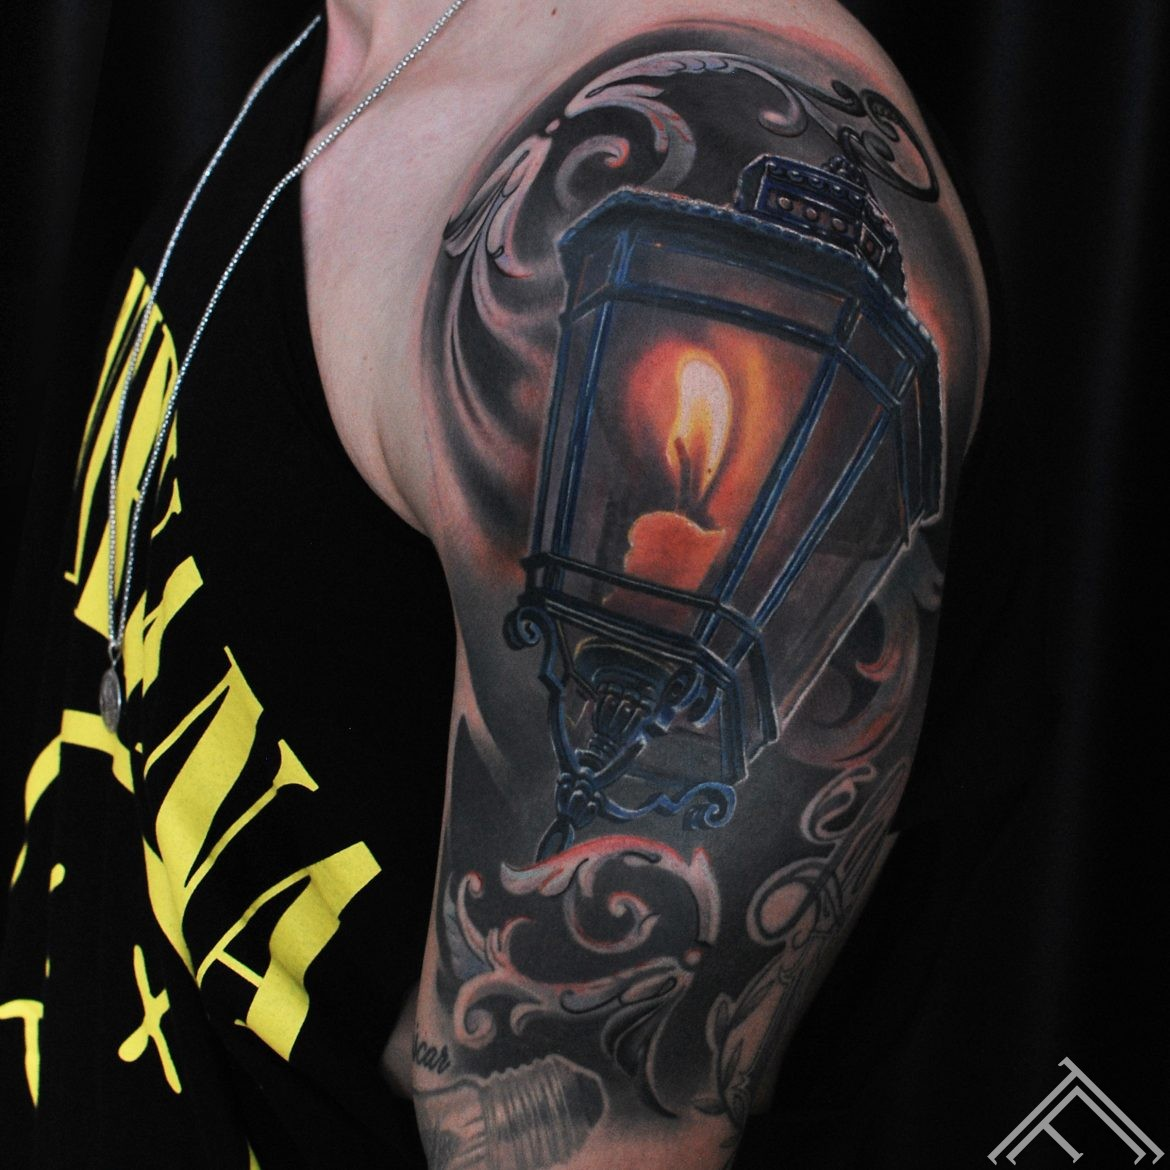 lamp-candle-tattoo-svece-liesma-fire-light-tattoo-marispavlo-tattoofrequency-riga-art -c